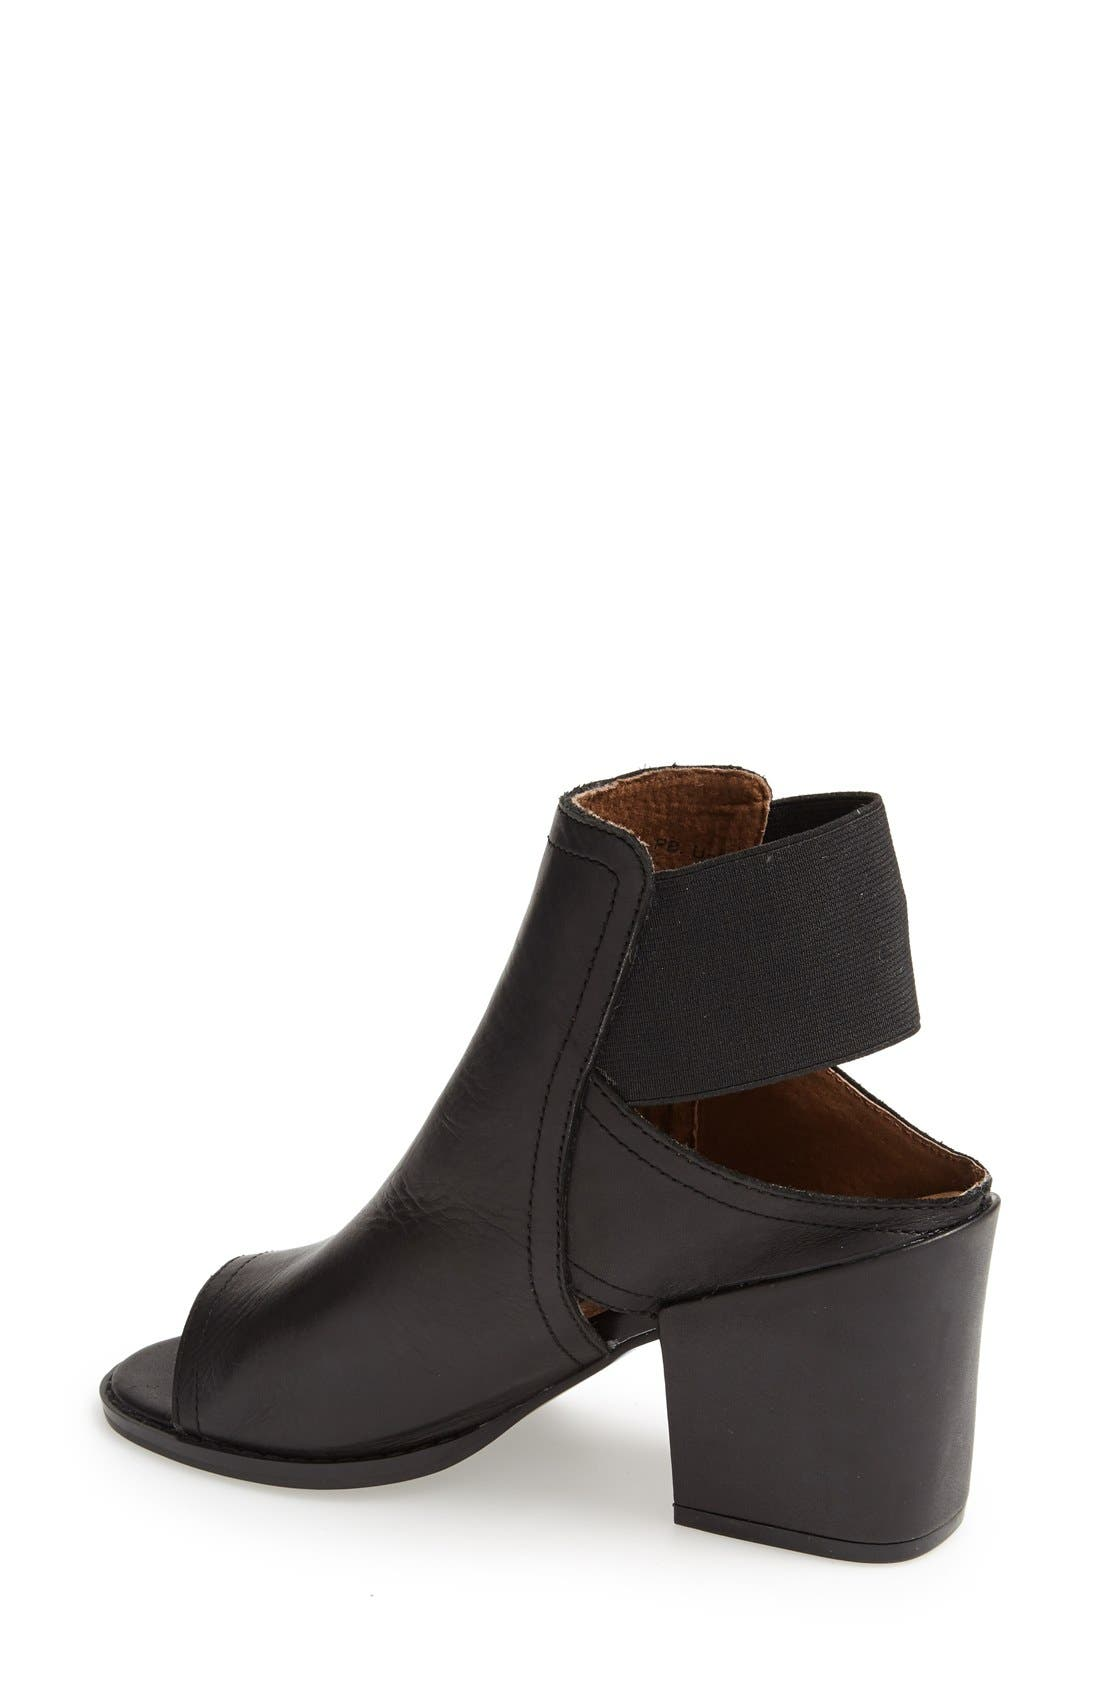 'Polly' Open Toe Bootie,                             Alternate thumbnail 4, color,                             001